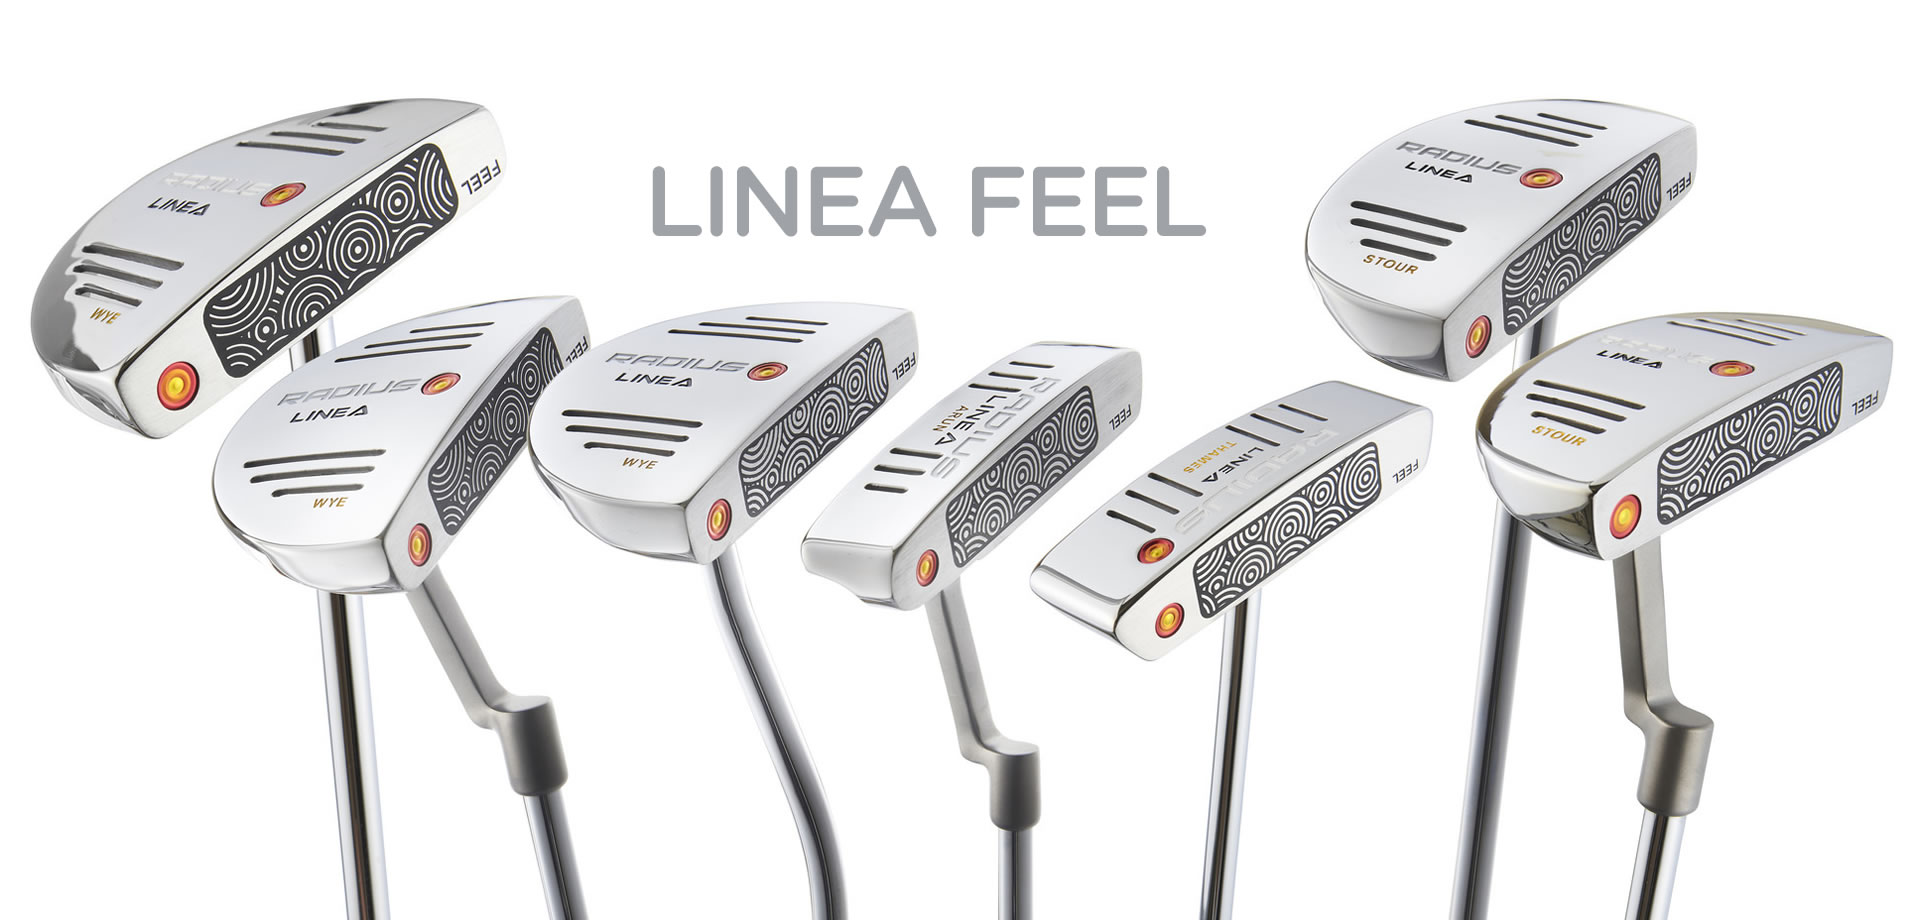 Linea Feel Putters Slider